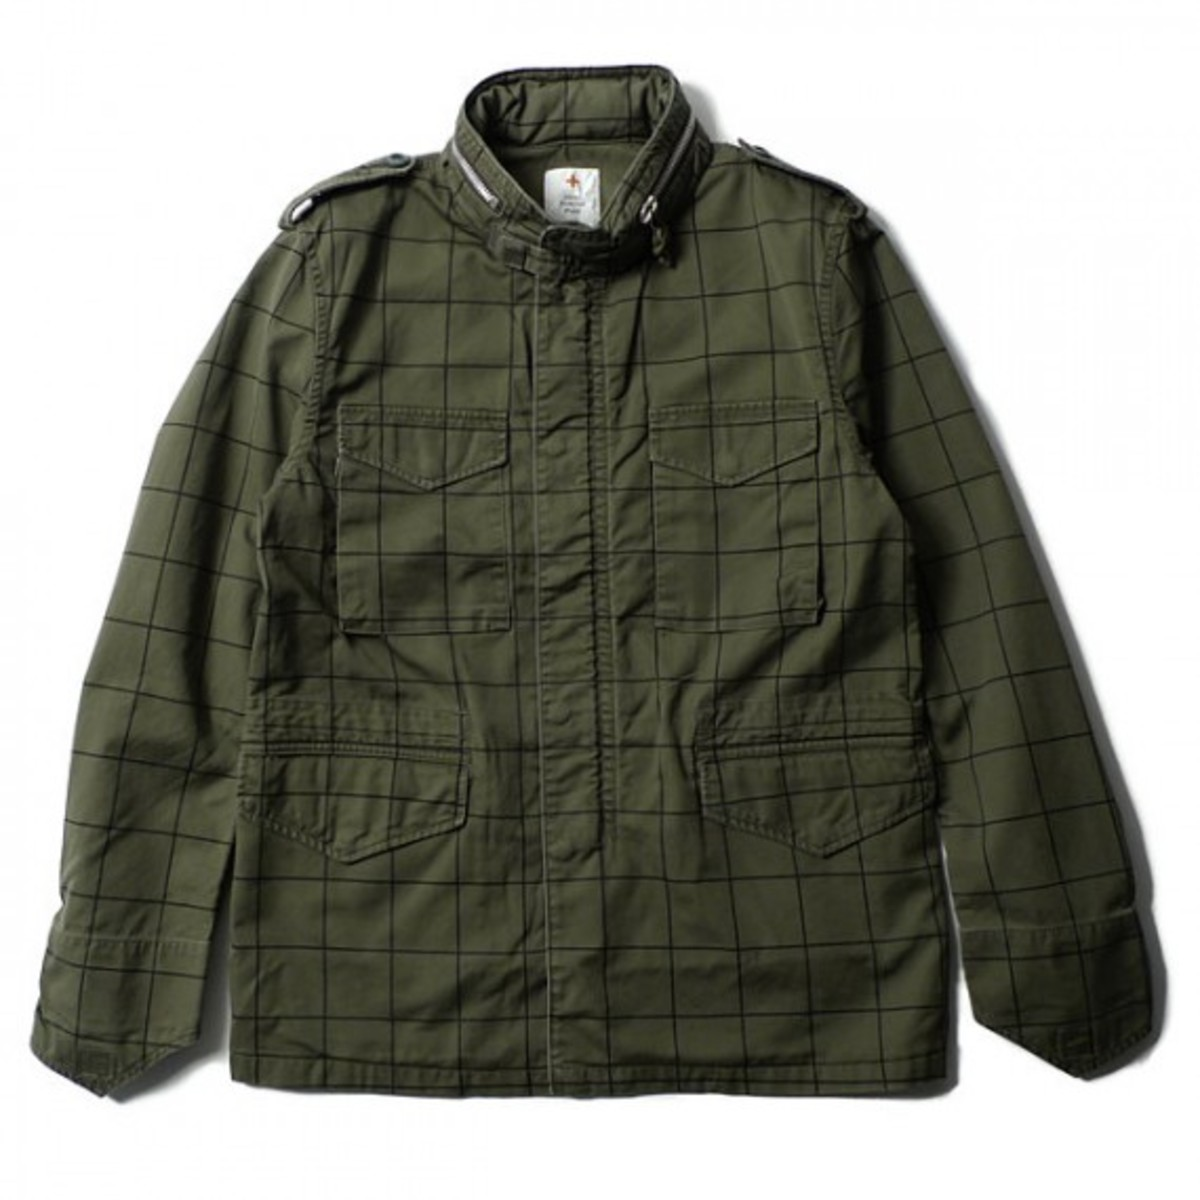 head-porter-plus-aw-2010-collection-new-releases-haven-3